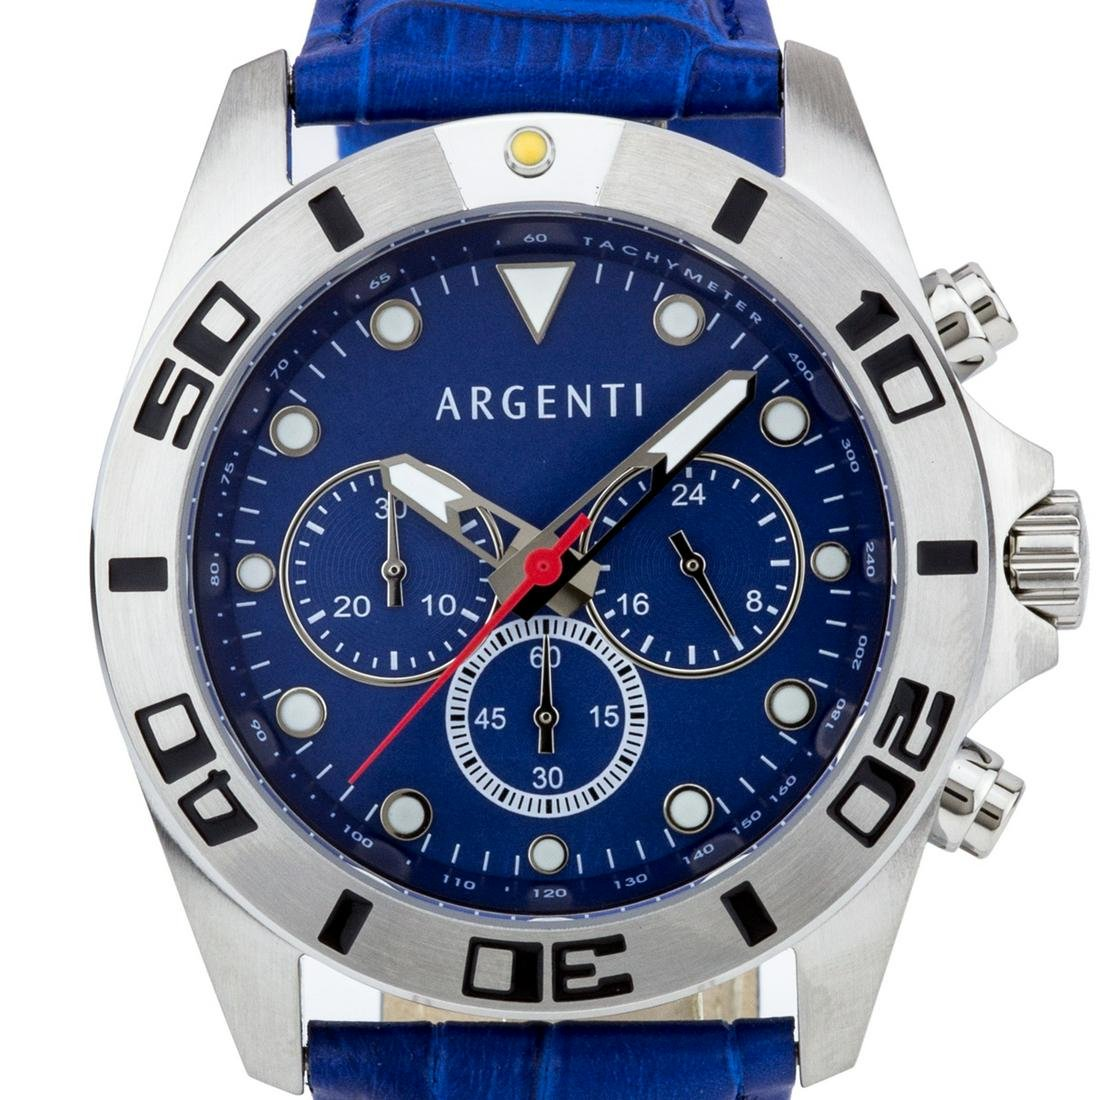 Argenti Talis 2 Chronograph Mens Watch